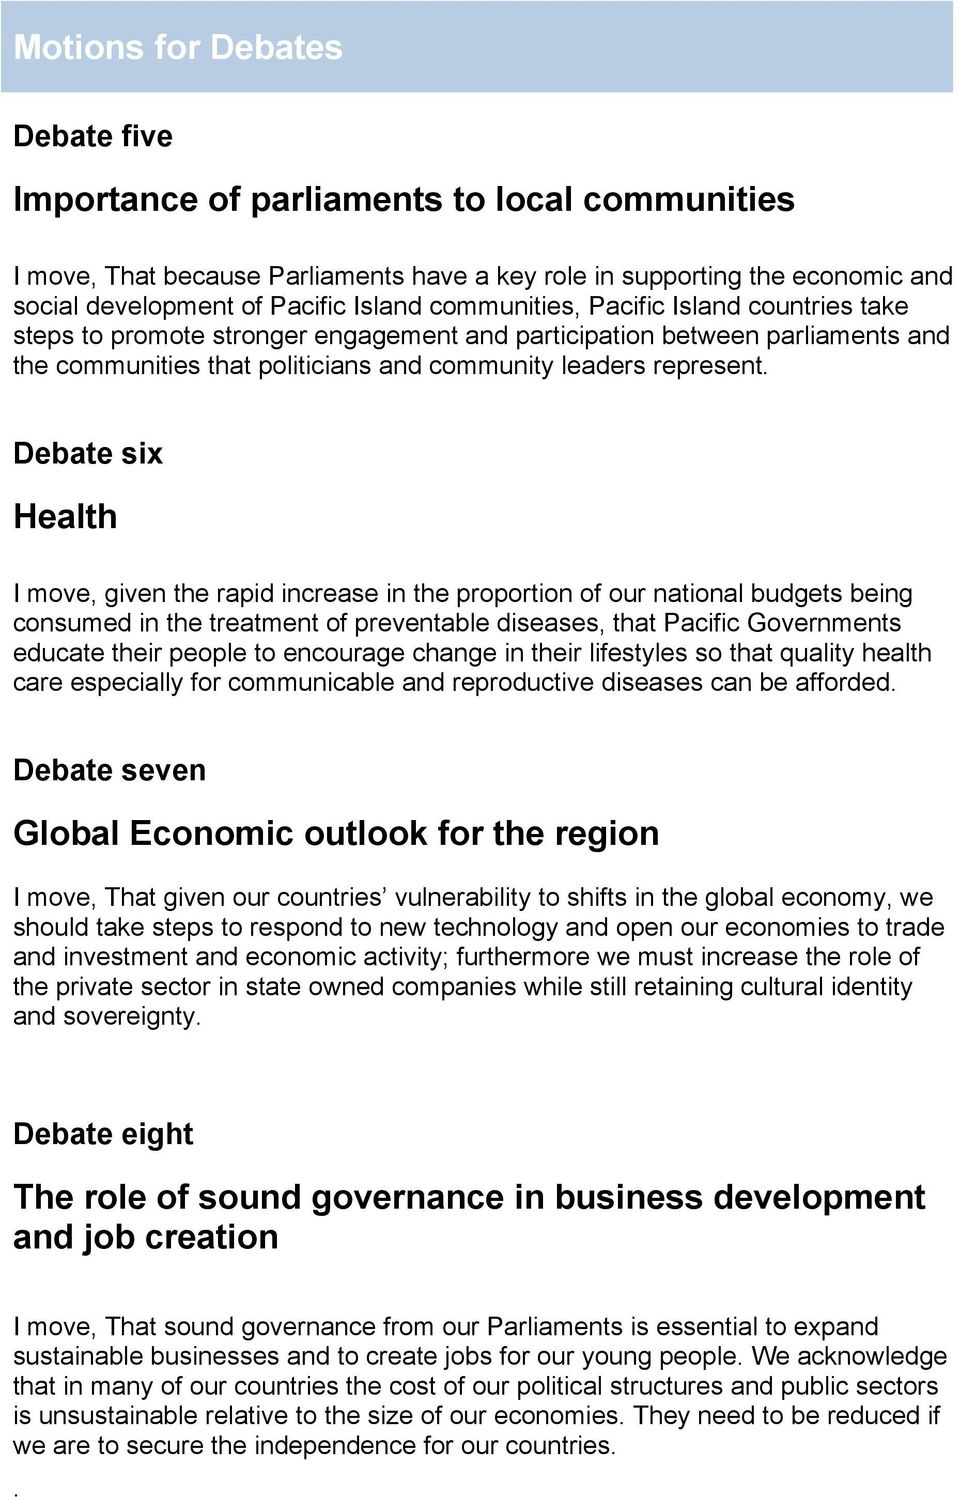 Debate six Health I move, given the rapid increase in the proportion of our national budgets being consumed in the treatment of preventable diseases, that Pacific Governments educate their people to